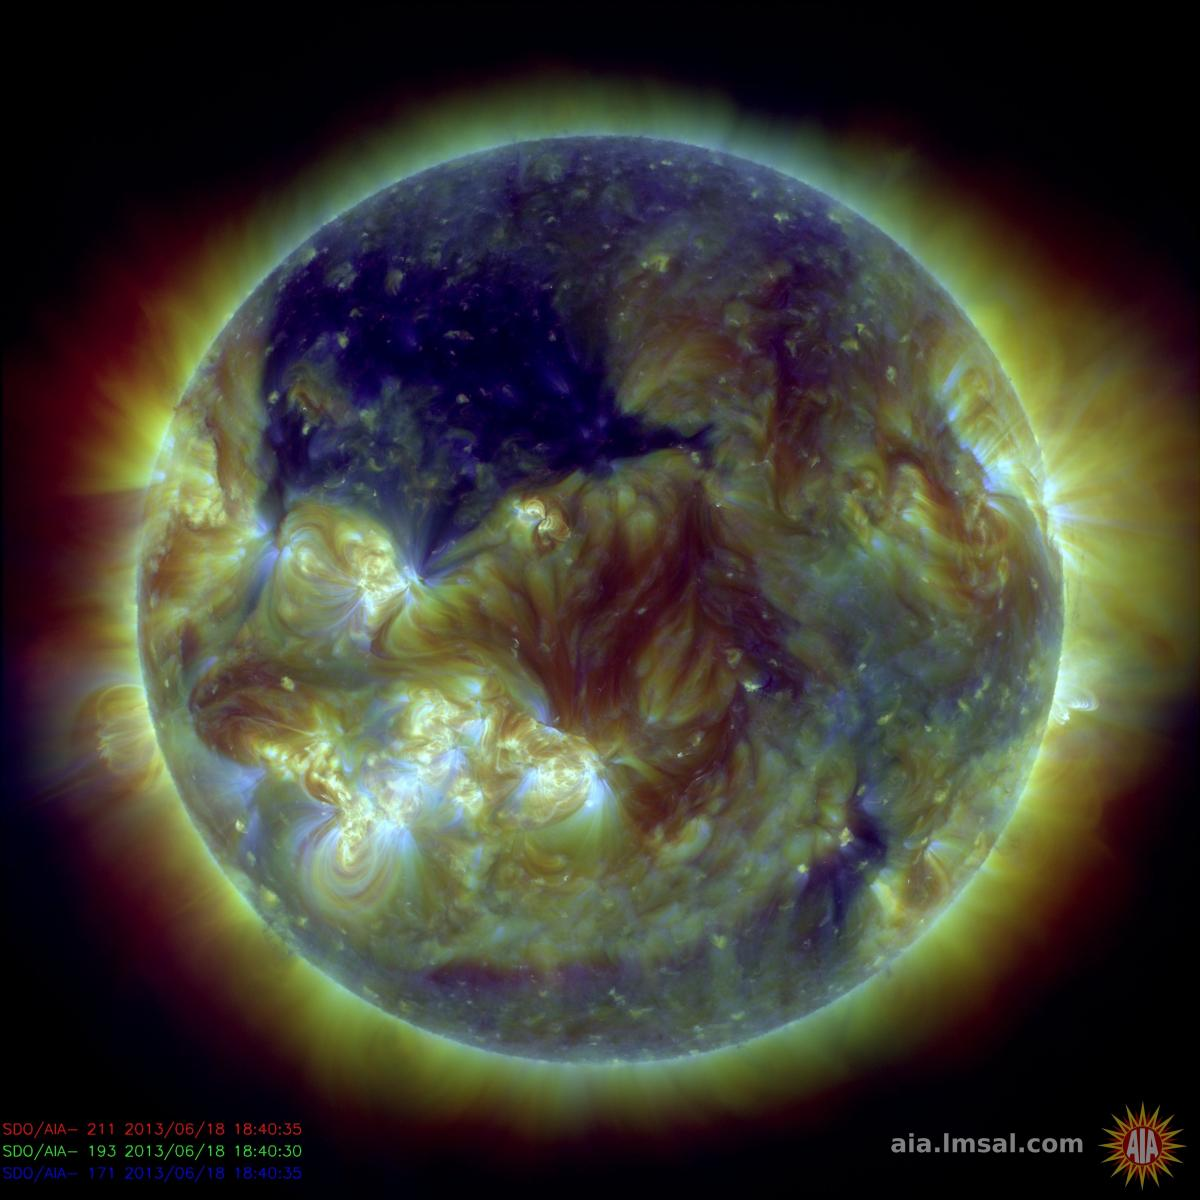 NASA's Solar Dynamics Observatory captured this picture of the sun on June 18. The dark blue area in the upper left quadrant of the sun is a huge coronal hole more than 400,000 miles across. Coronal holes are areas of the sun's outermost atmospheric layer